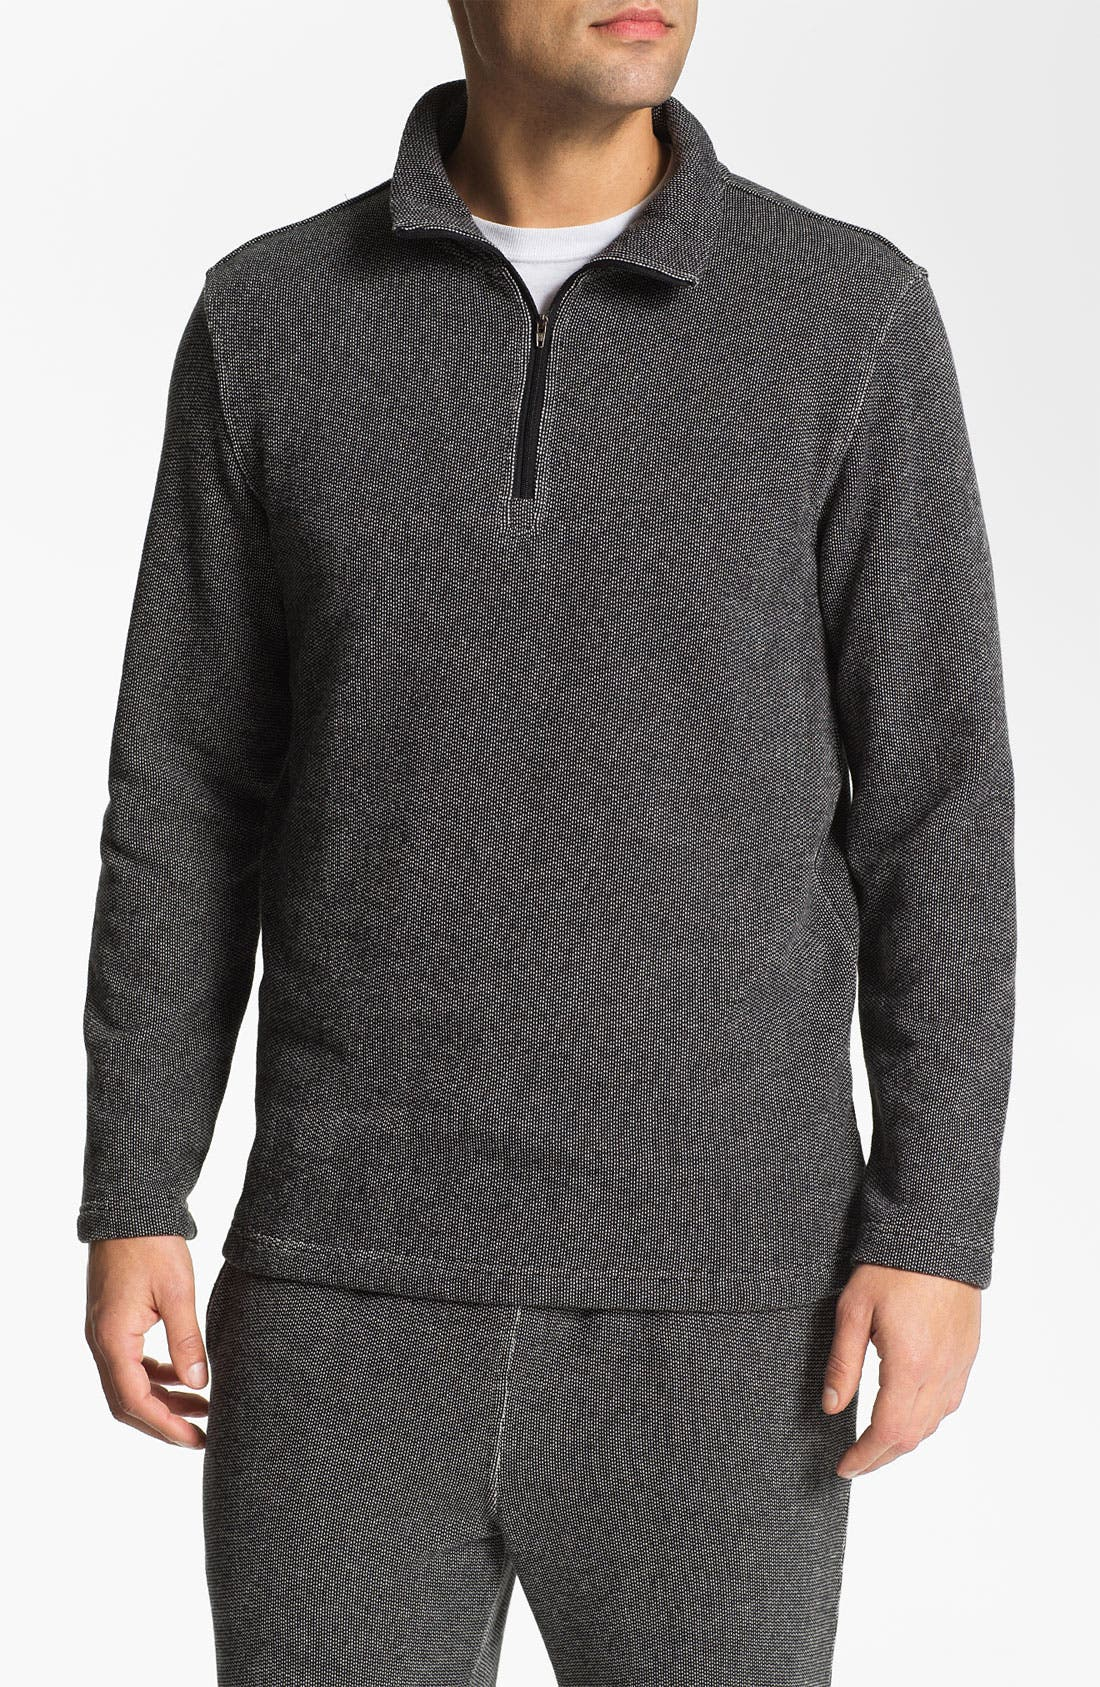 Alternate Image 1 Selected - Daniel Buchler Quarter Zip Textured Cotton Blend Sweatshirt